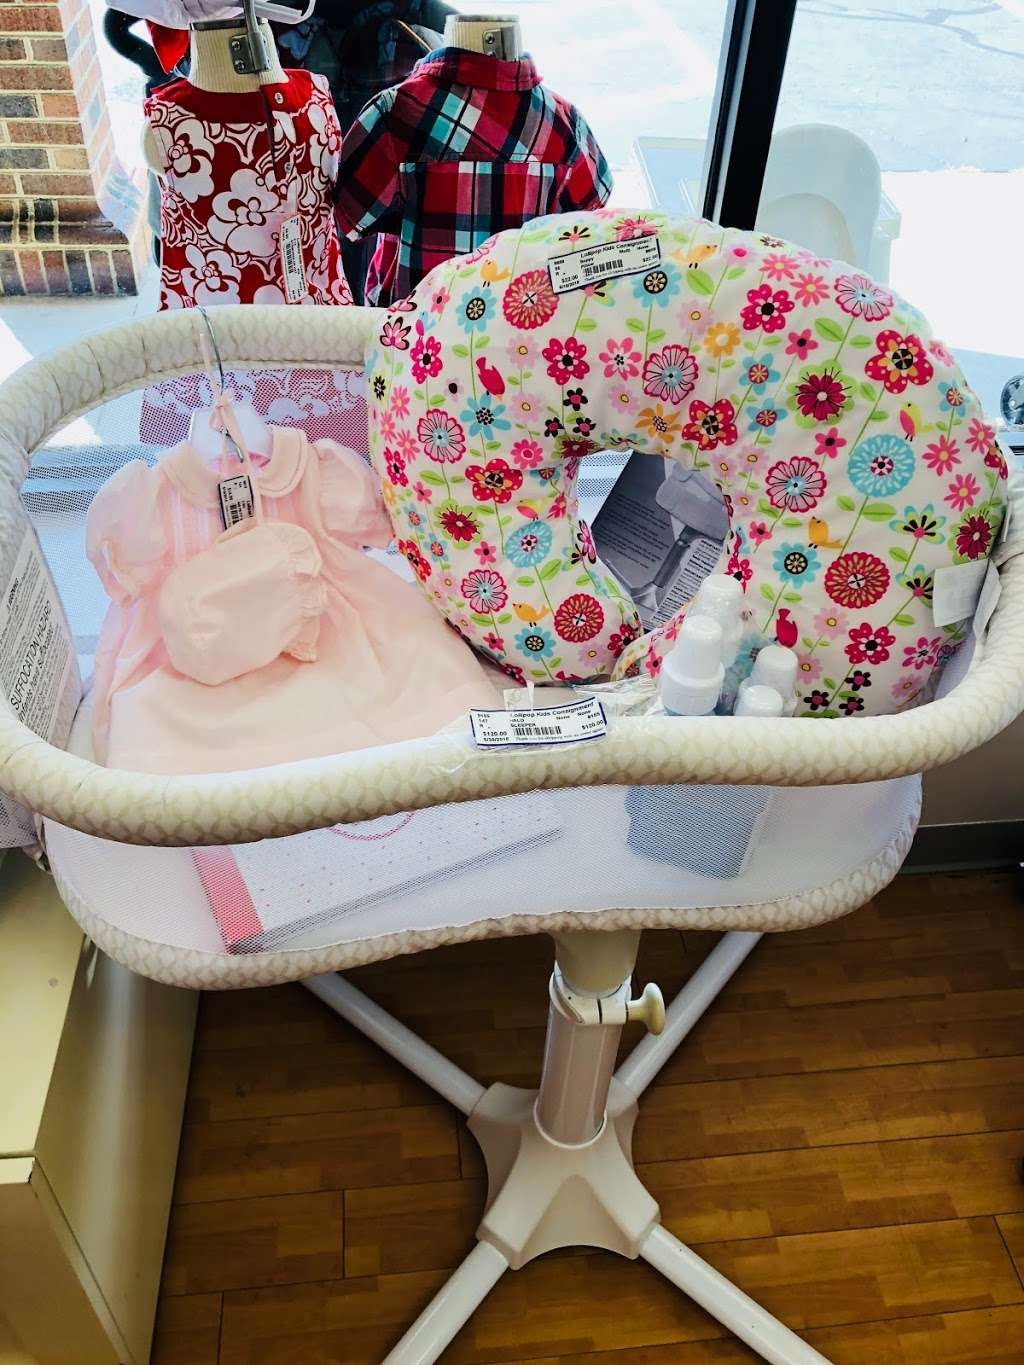 Lollipop Kids Consignment - clothing store    Photo 3 of 5   Address: 1776 N Center St ste a, Hickory, NC 28601, USA   Phone: (828) 569-1566